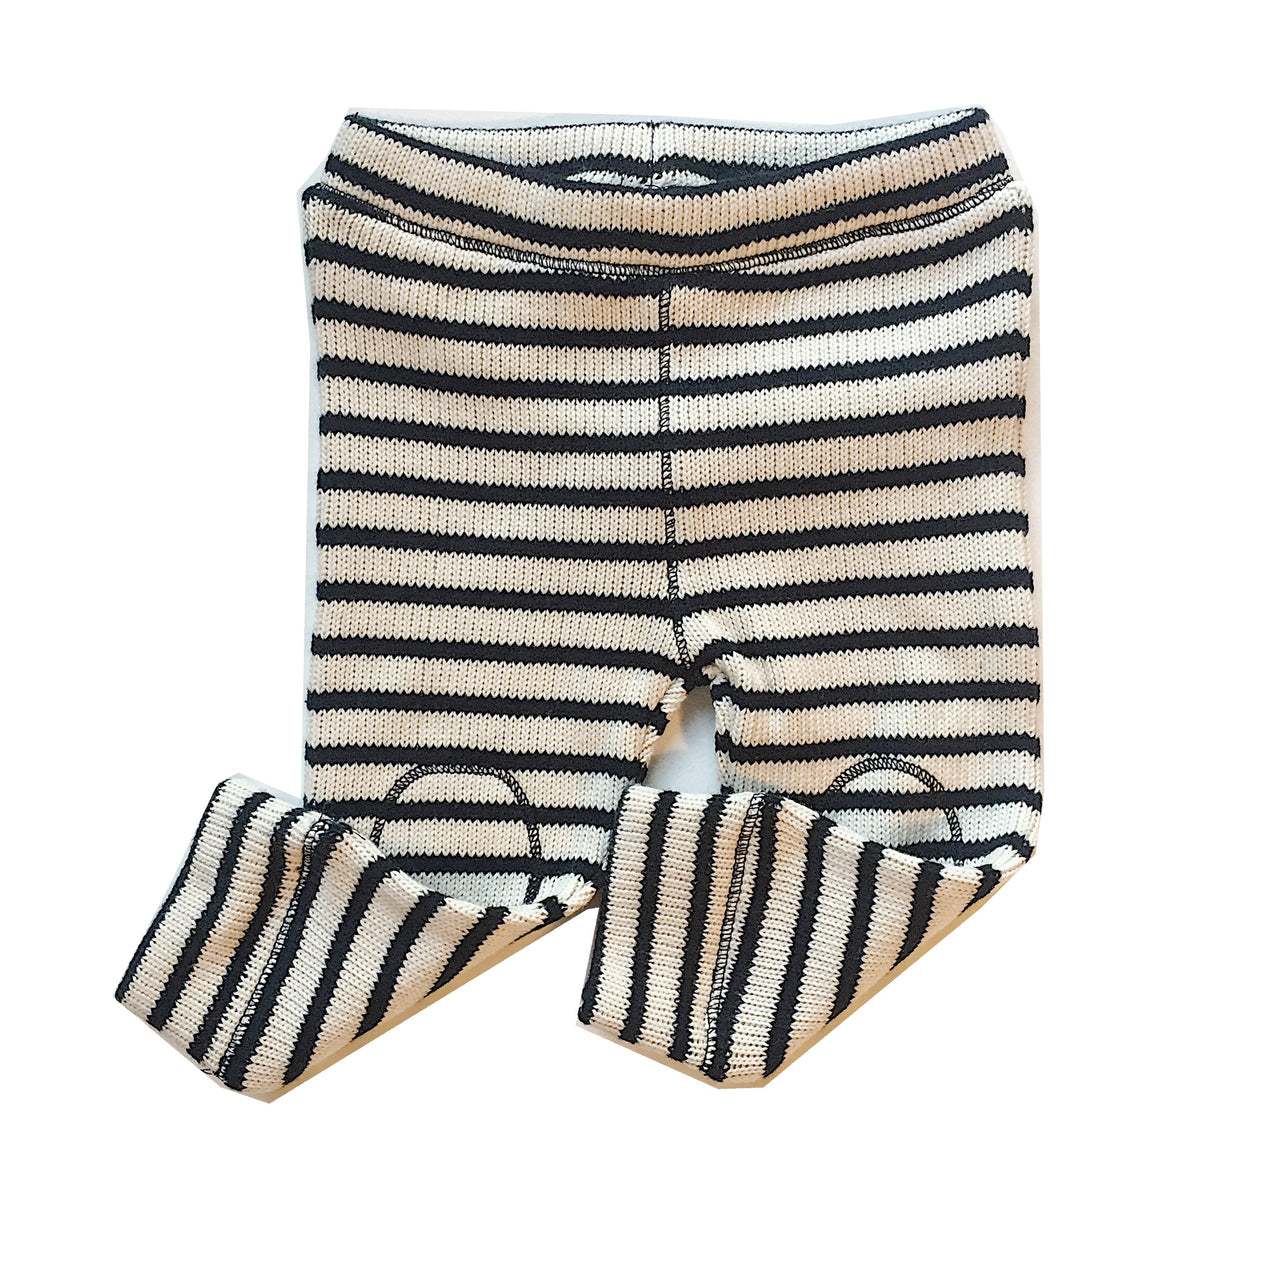 Knitlook Stripe Legging - Claude & Co